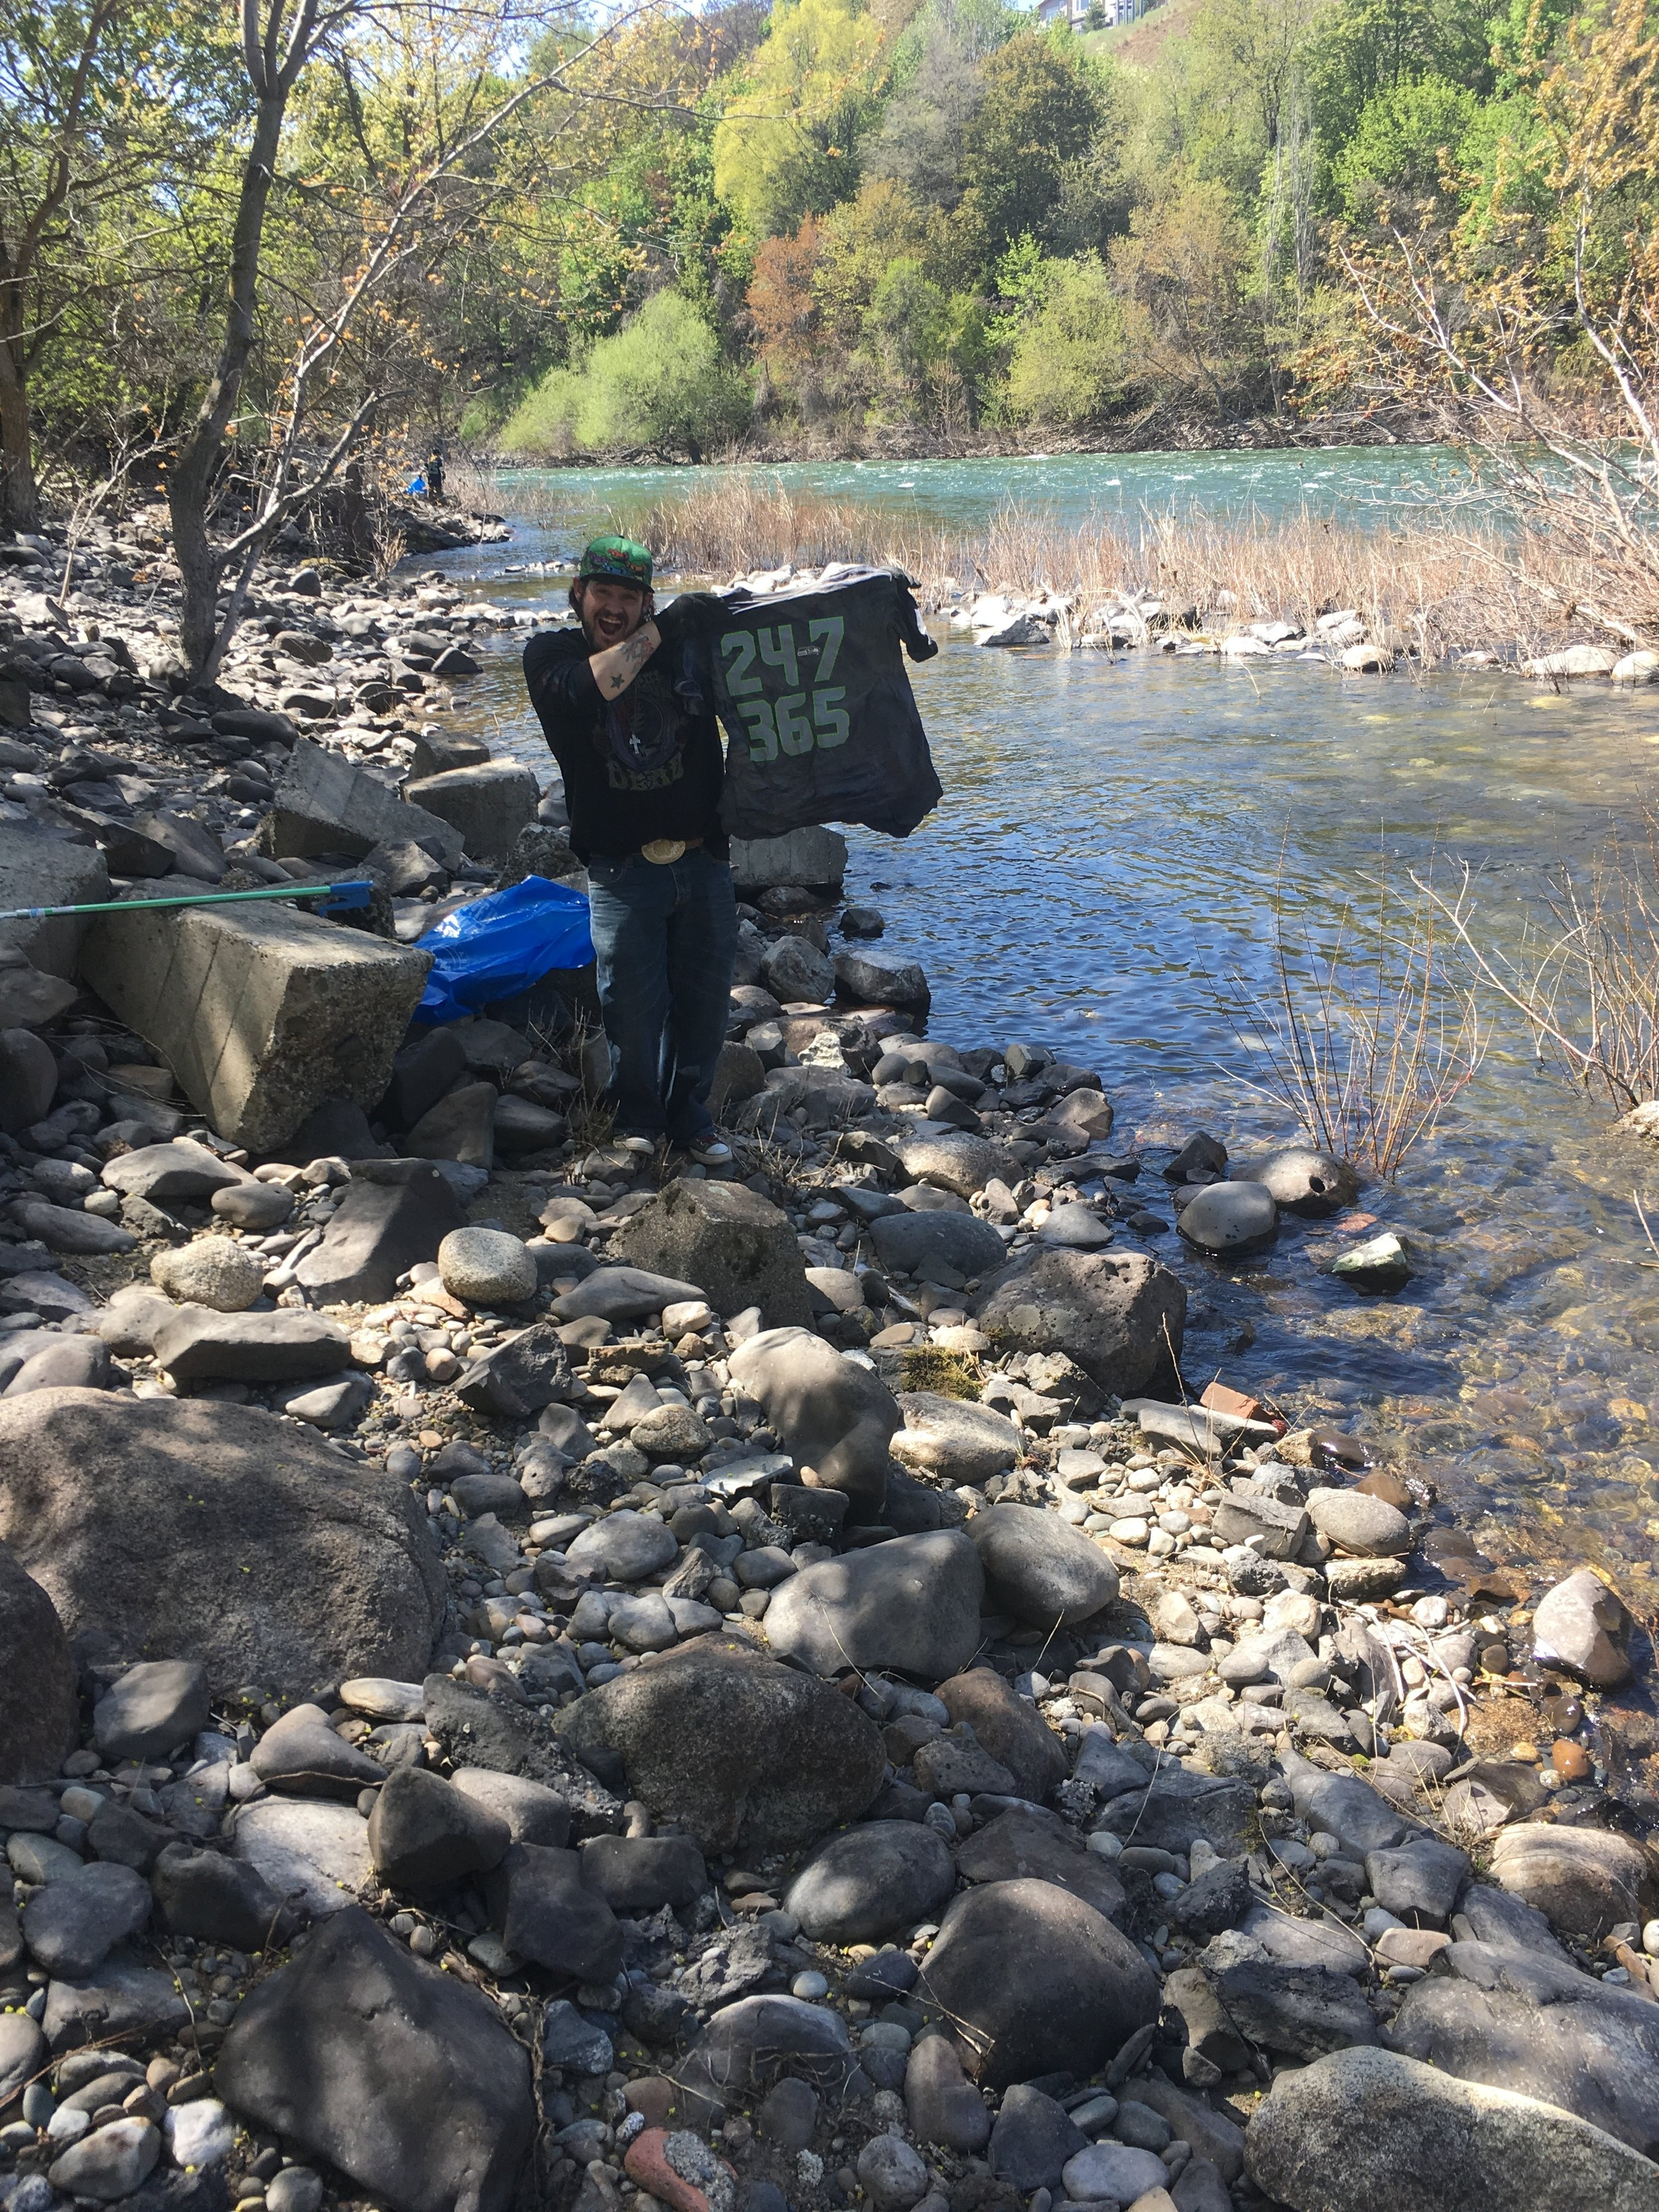 A typical river clean up involves walking the banks of the Spokane River, along paths or uneven surfaces.